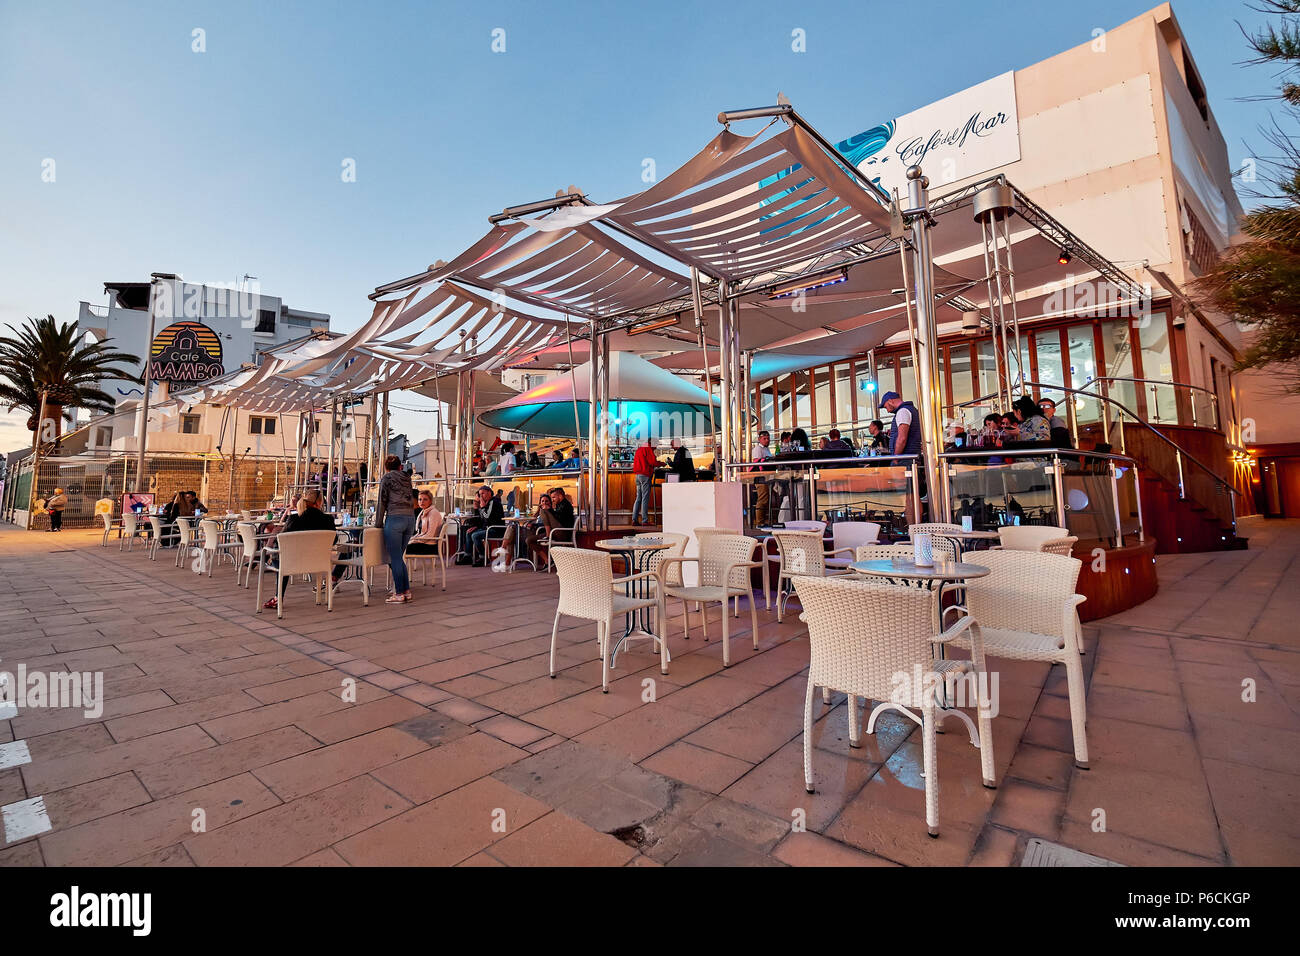 Ibiza Island, Spain - May 1, 2018: People at Cafe Del Mar cafe at sunset. This place is famous for views to the sunsets and lounge music. Ibiza, Balea - Stock Image